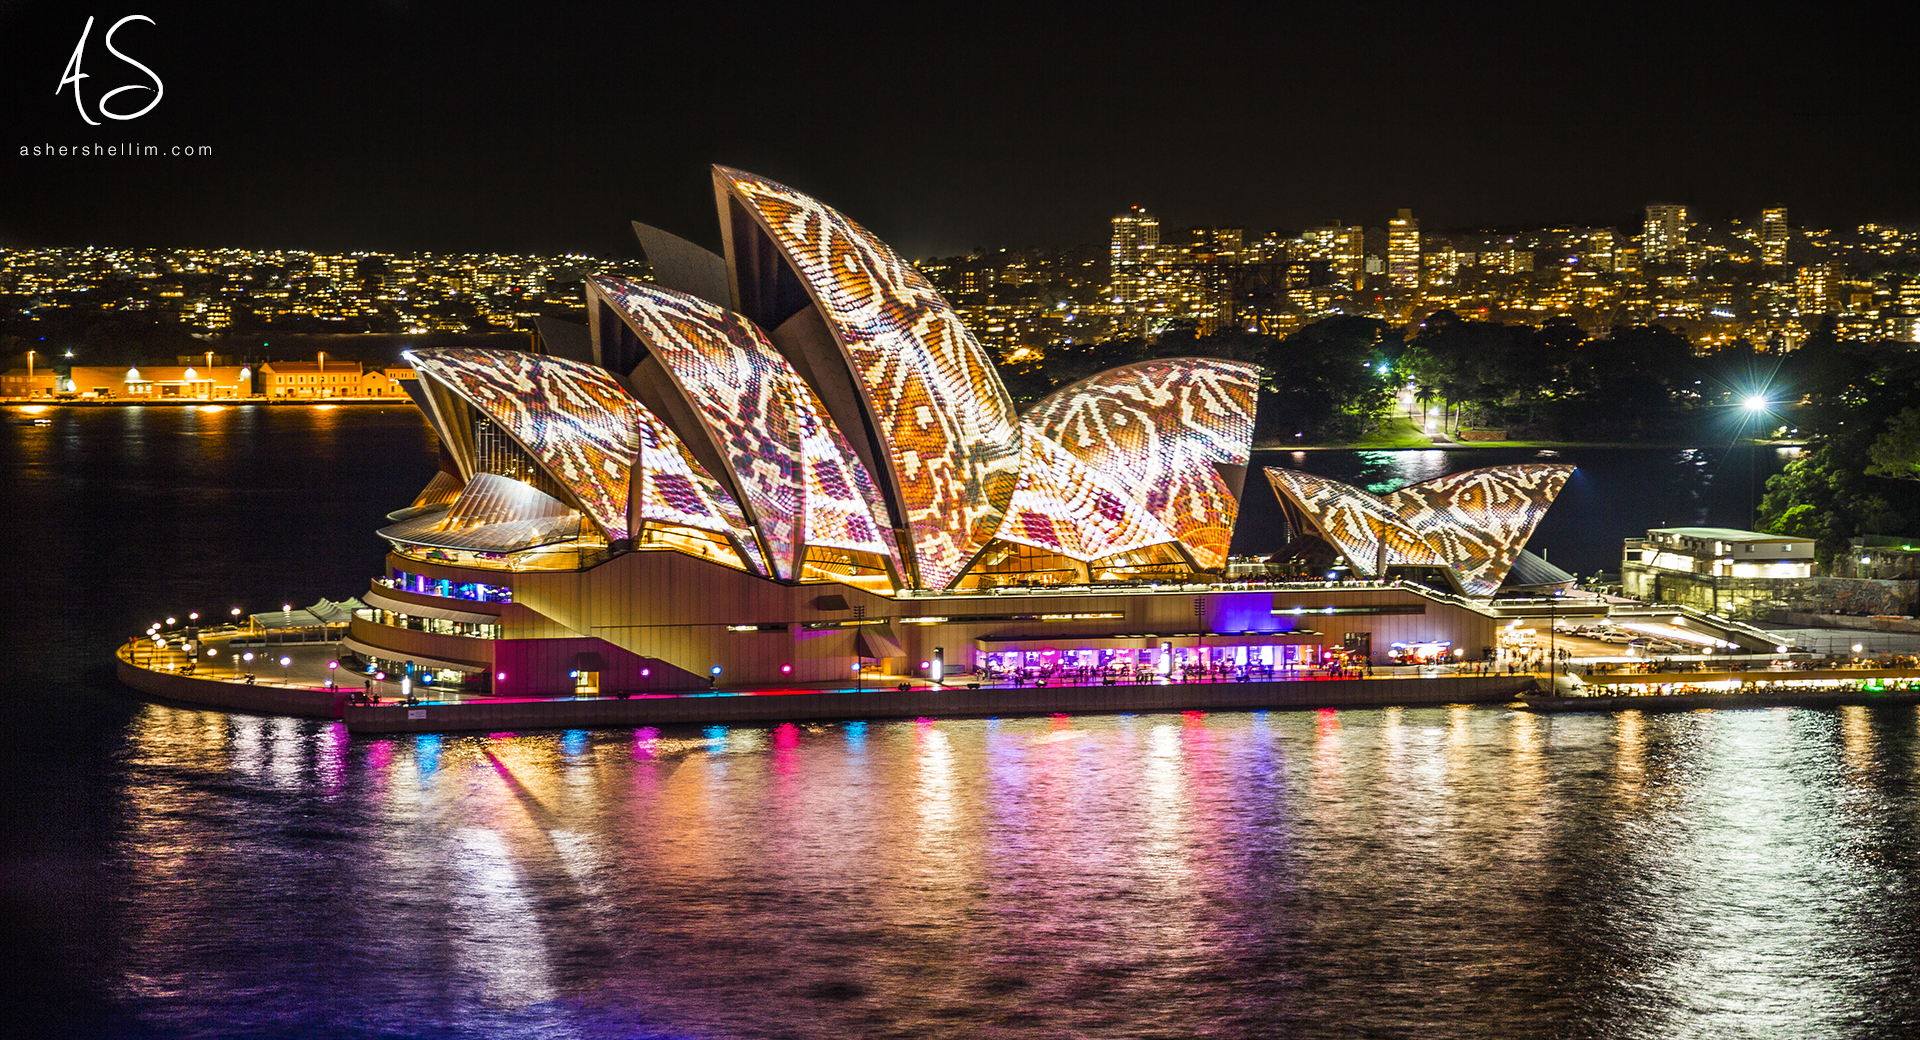 ' Sea Snake ' - Winner of the Sydney.com, Vivid 2014 Photography Competition